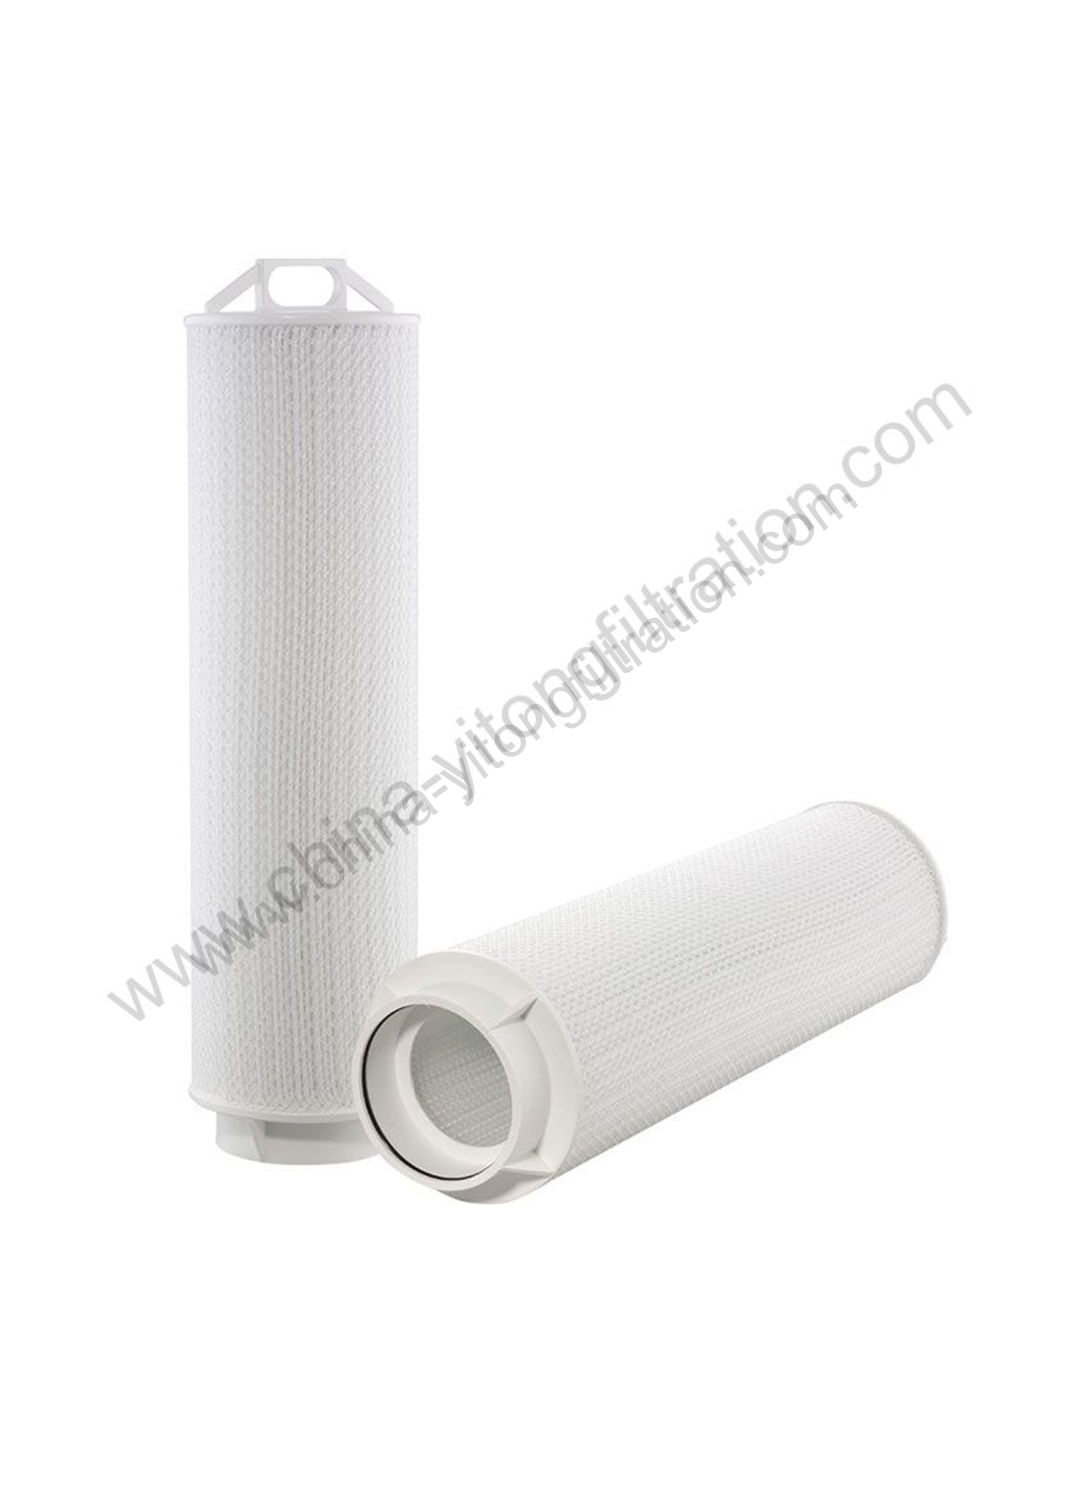 YTHF152 High Flow Filter Cartridge